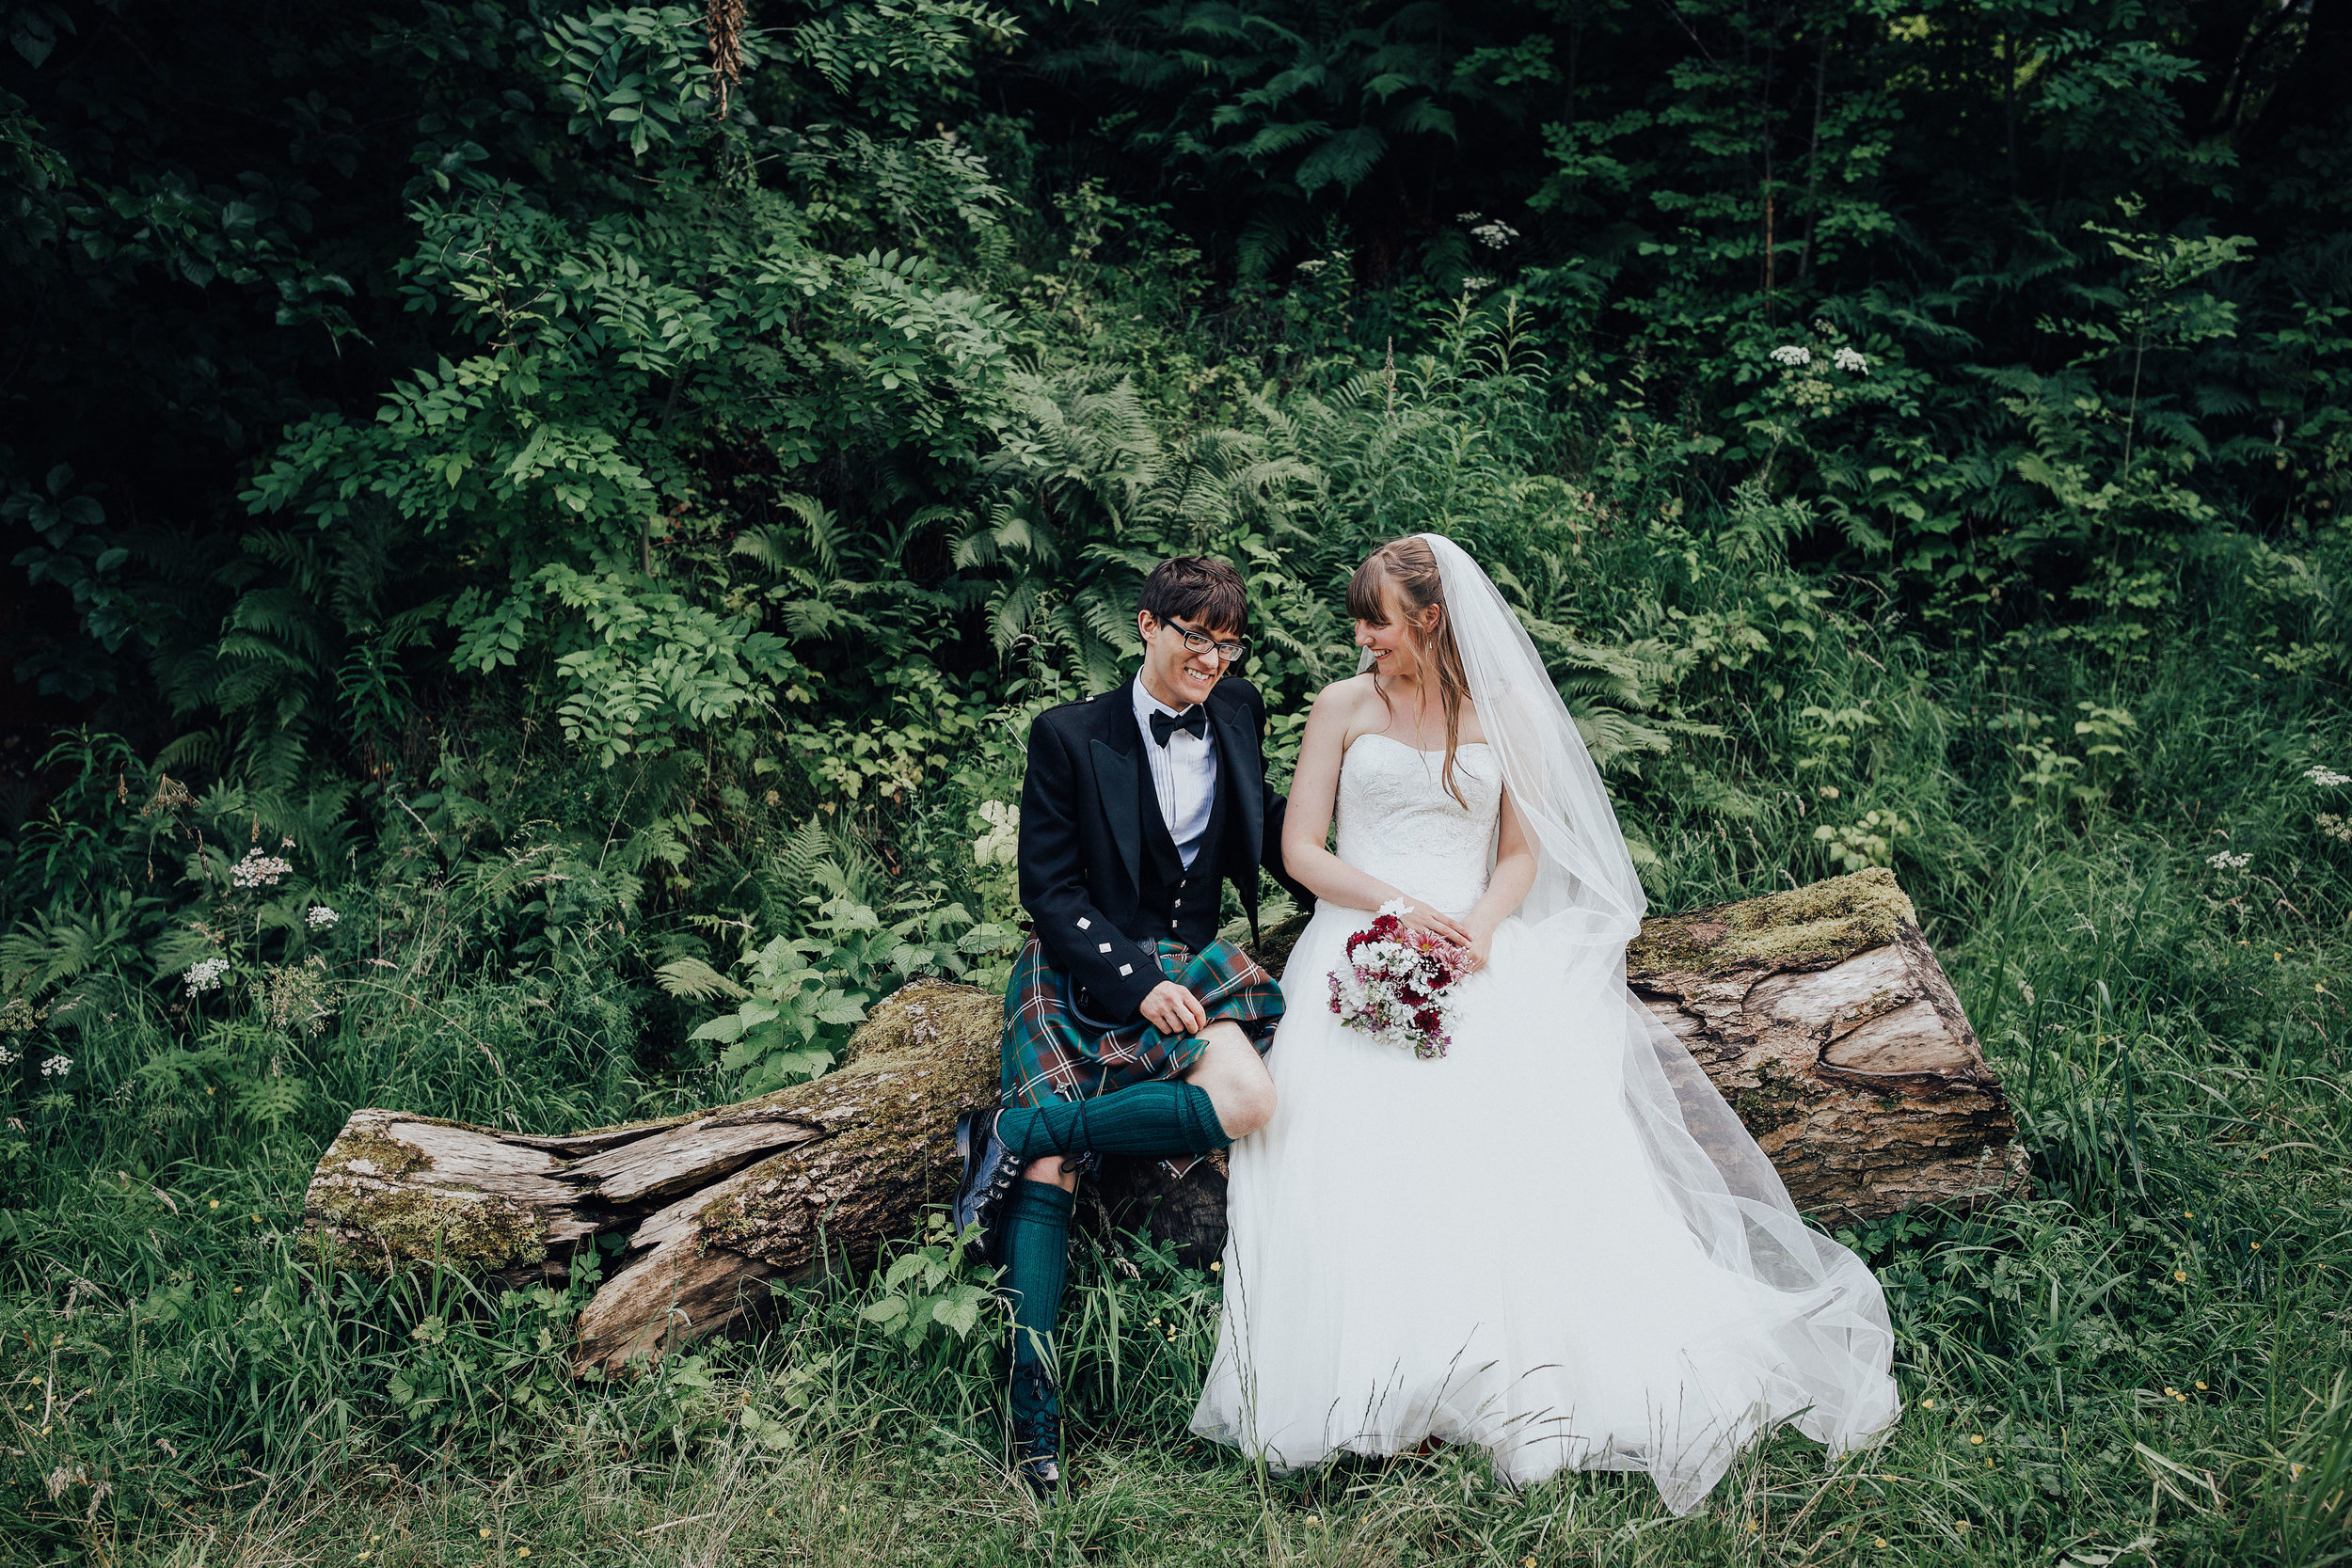 ALTERNATIVE_GLASGOW_CITY_WEDDING_PJ_PHILLIPS_PHOTOGRAPHY_WEDDING_PHOTOGRAPHY_69.jpg